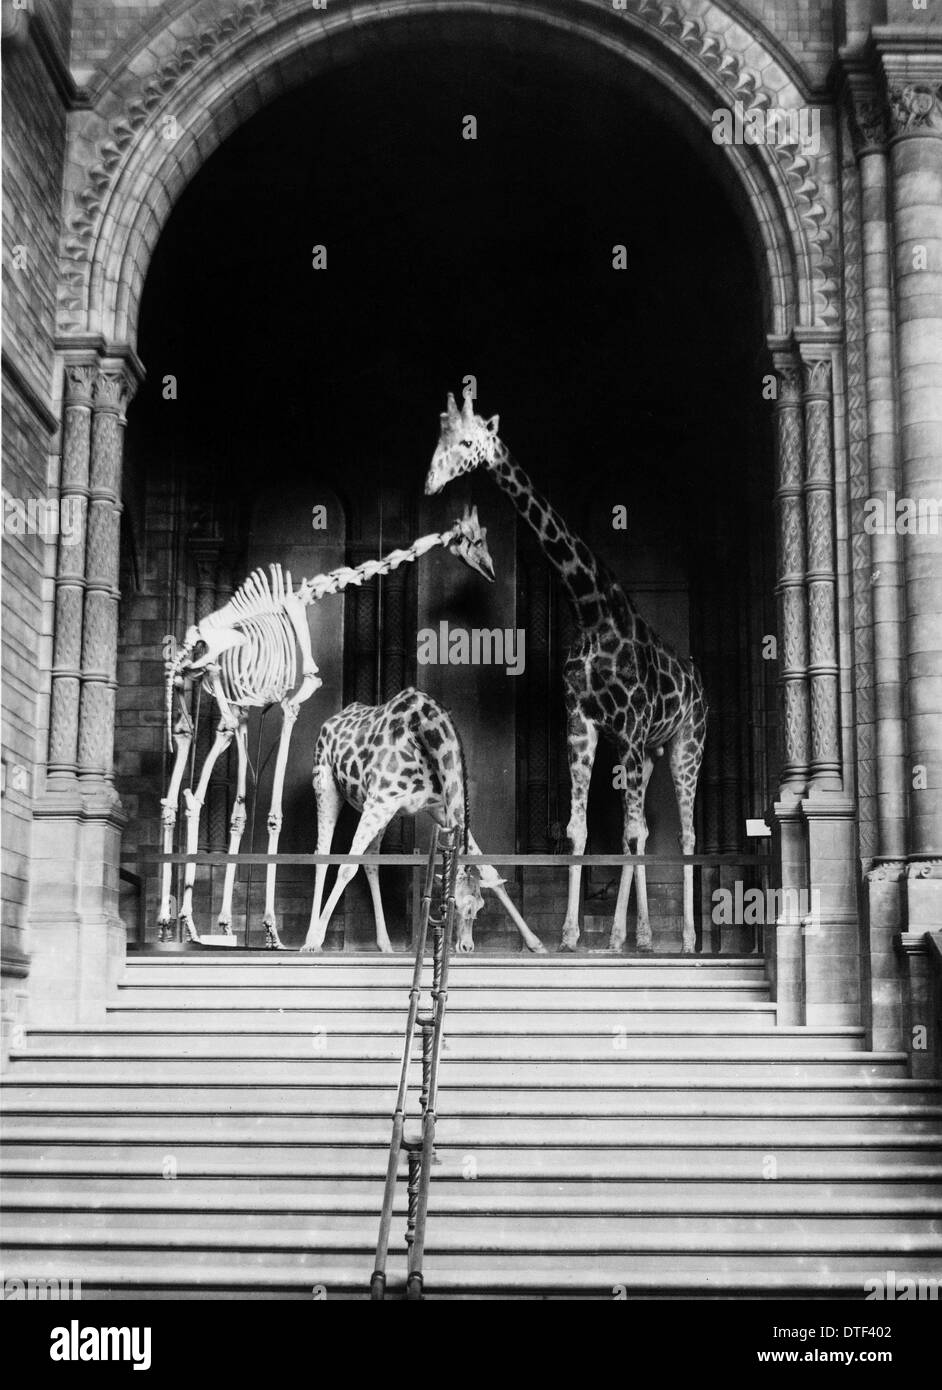 Giraffes on steps, October 1903 at the Natural History Museum, London - Stock Image